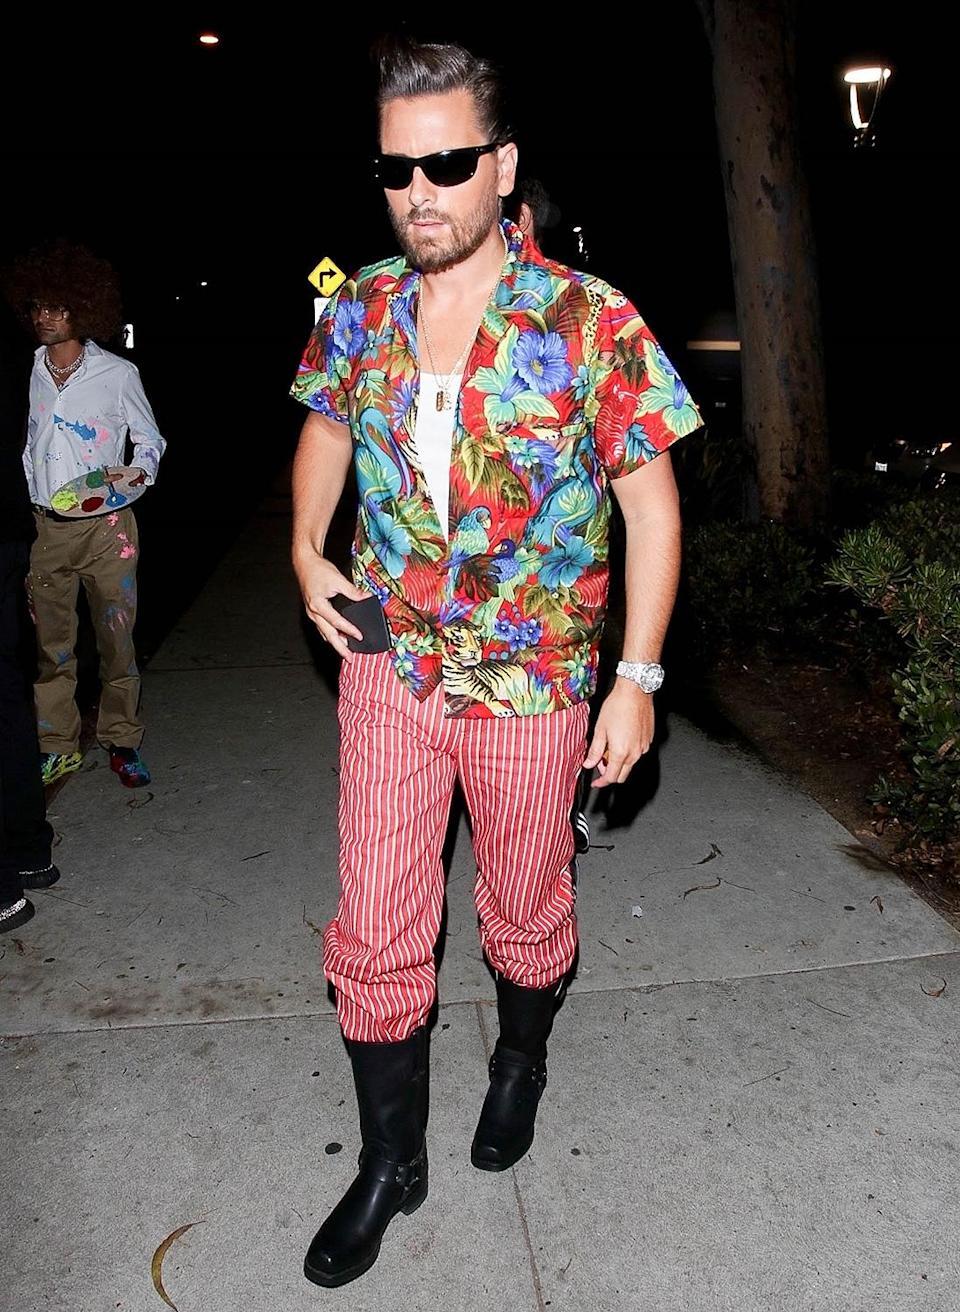 <p>Scott Disick dressed up in a <em>Ace Ventura</em> costume in Santa Monica, California, for Halloween.</p>